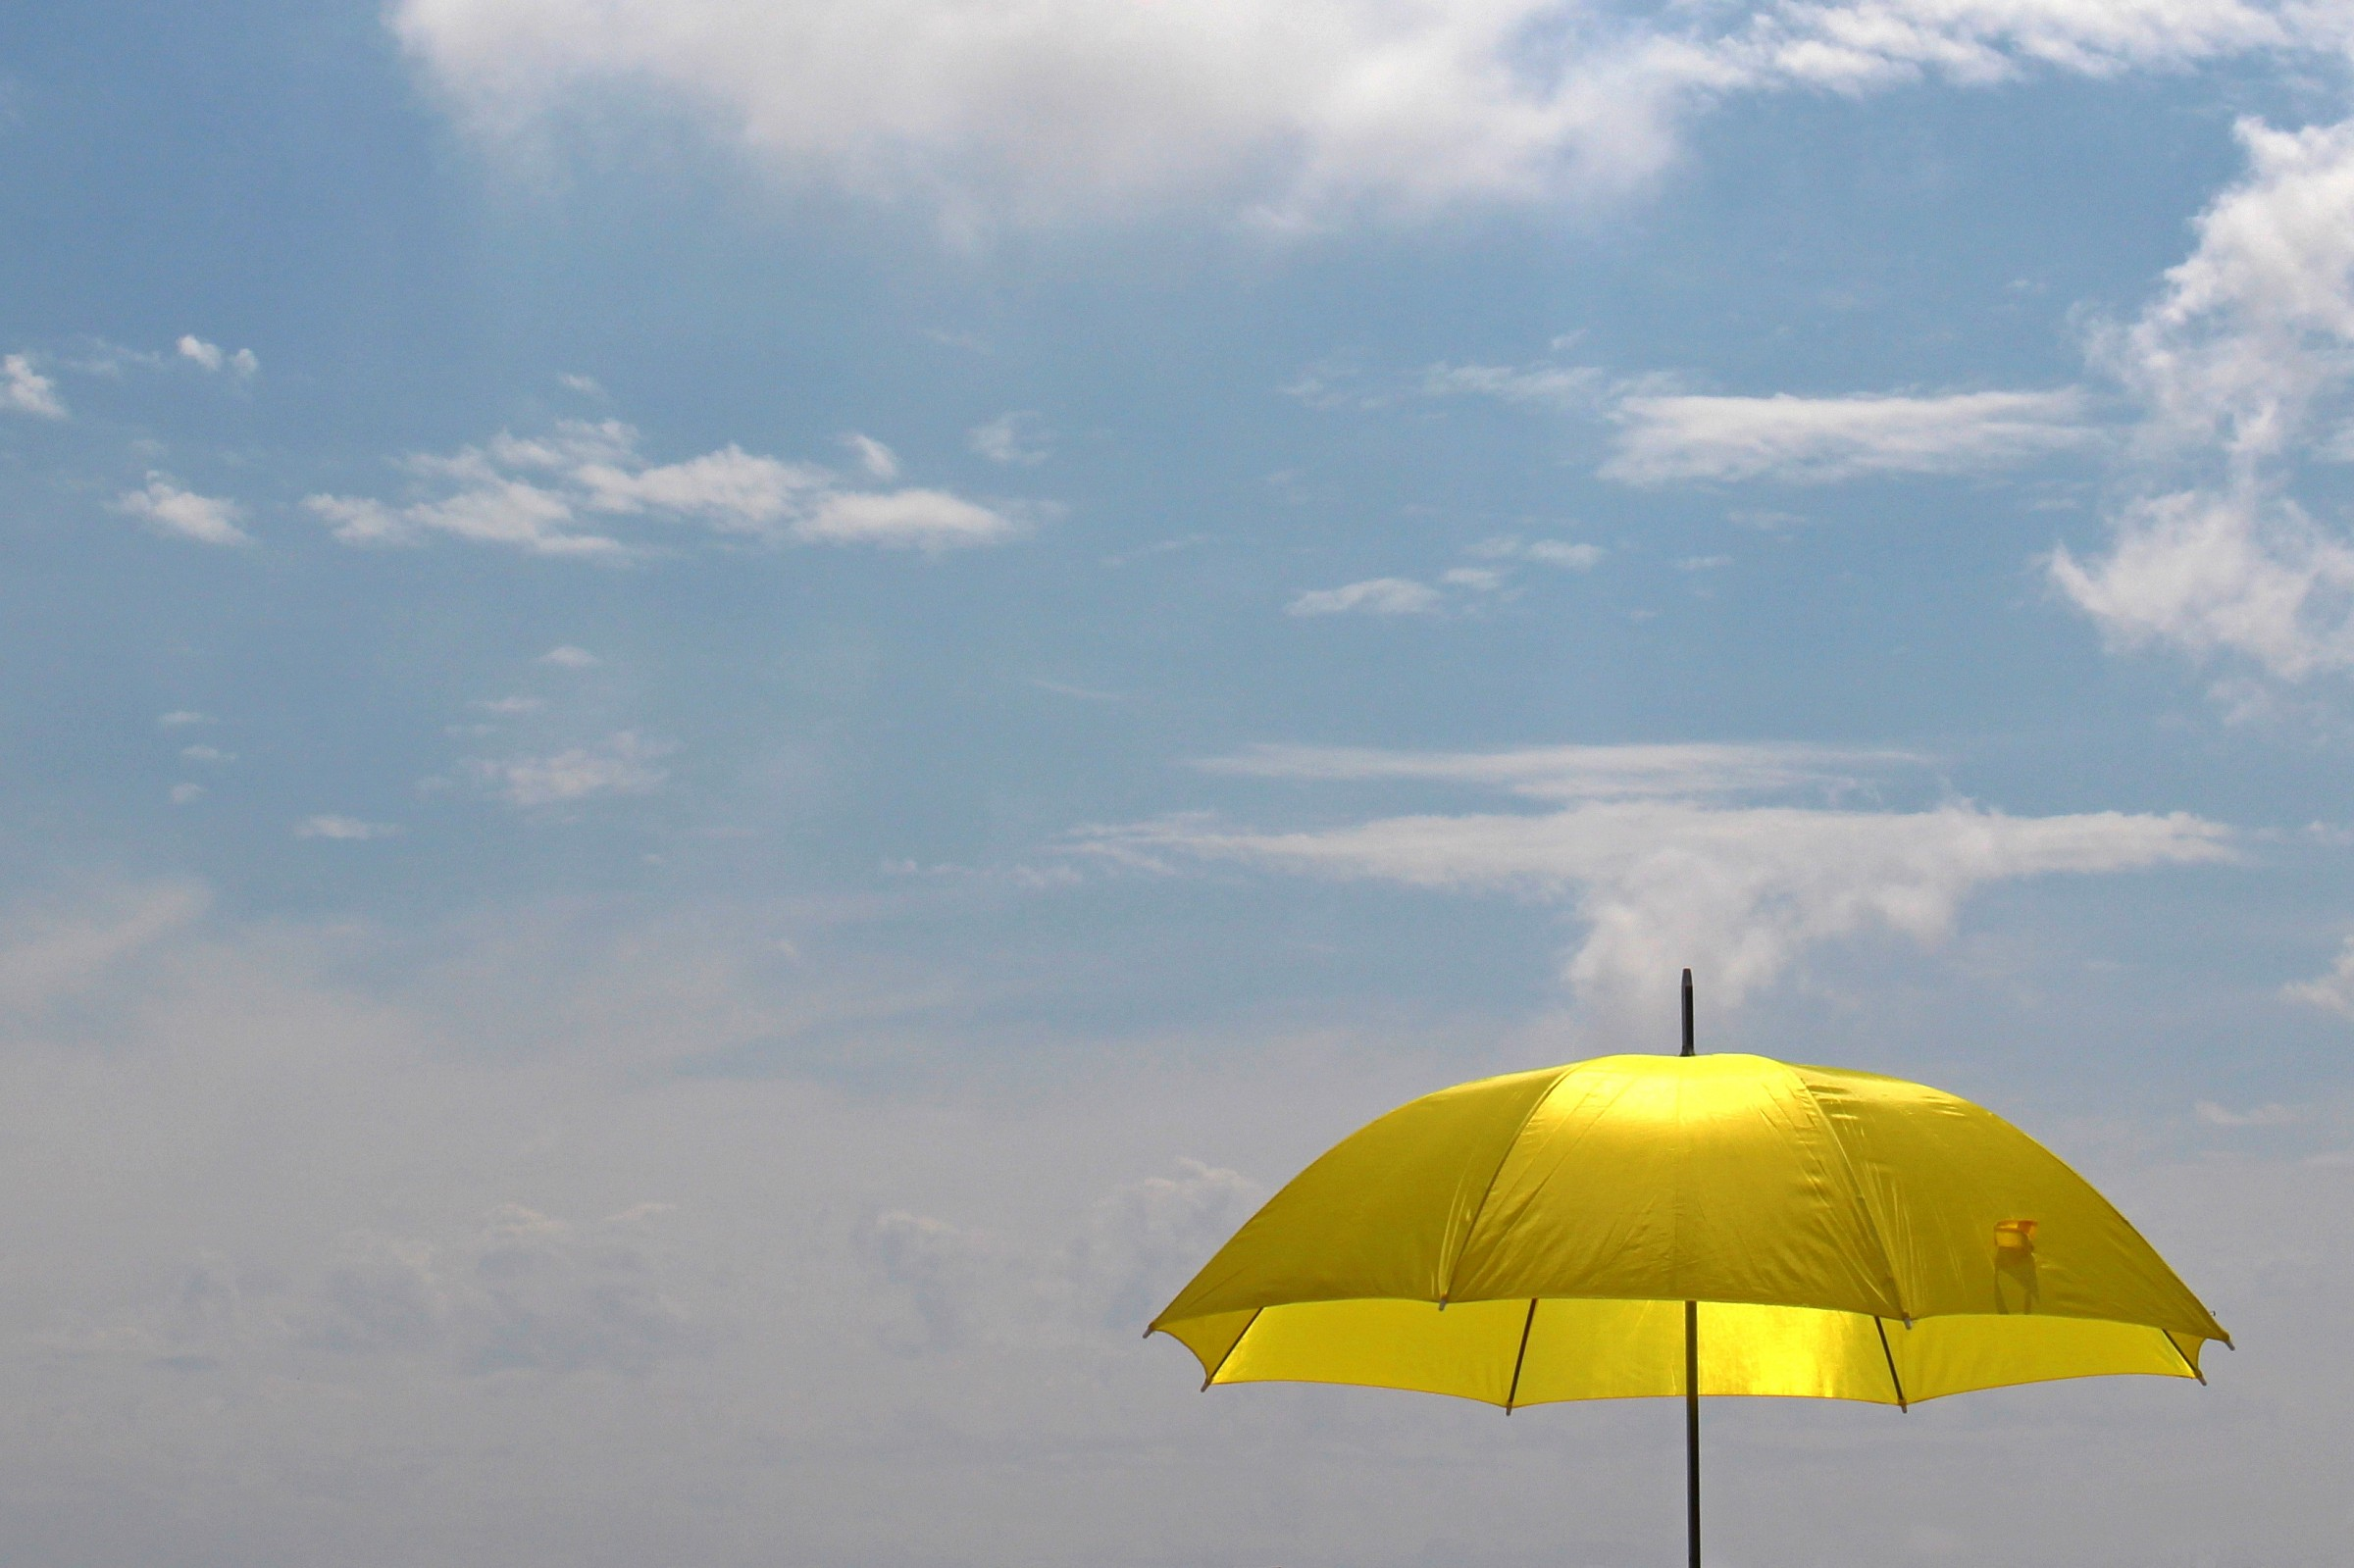 The umbrella that you do not expect...